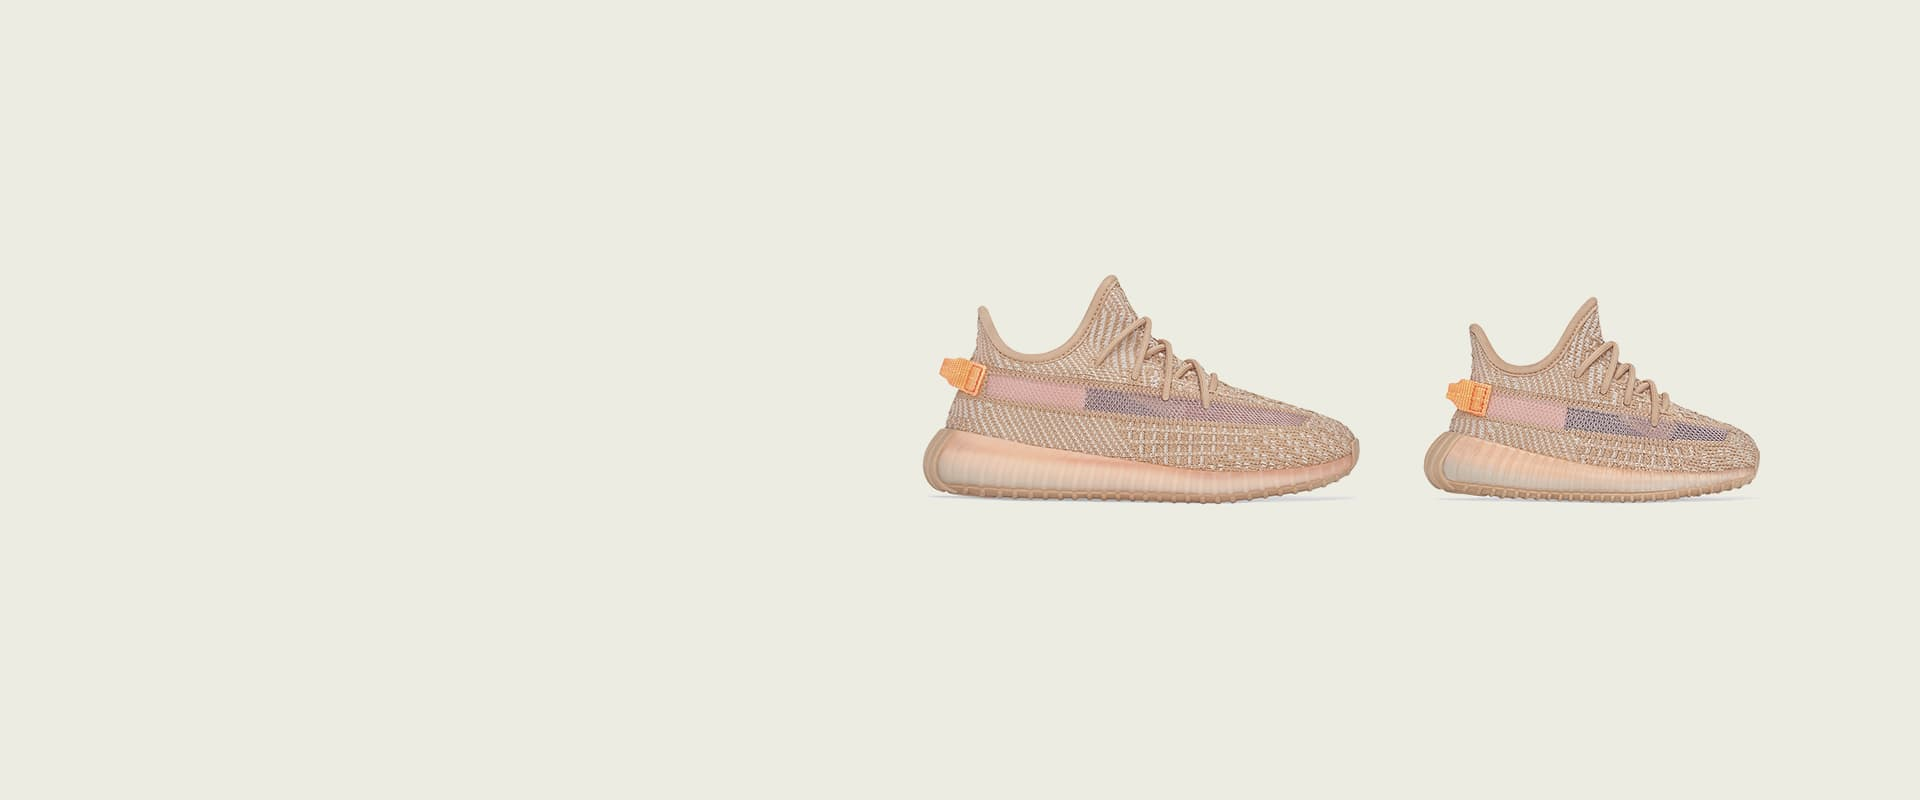 info for 17fc2 58cd9 YEEZY BOOST 350 V2 CLAY